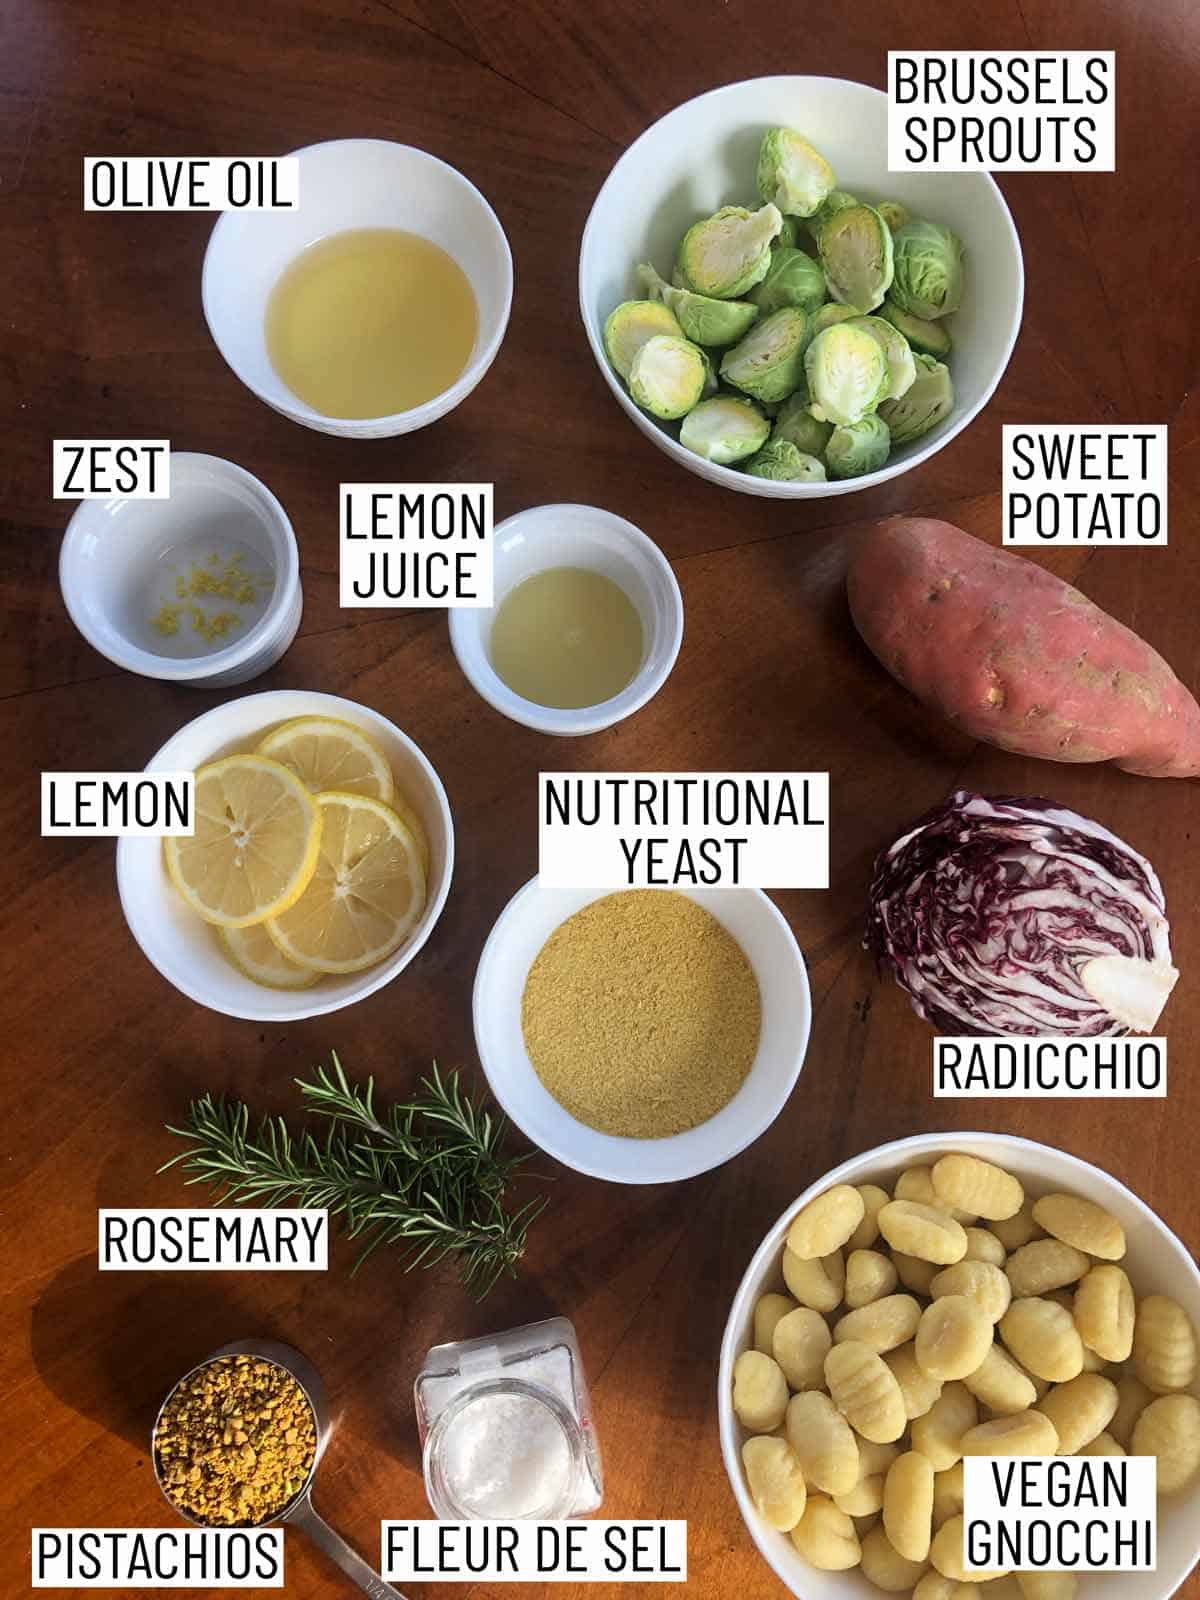 Flat lay image of portioned recipe ingredients including sweet potato, radicchio, vegan gnocchi, fleur de sel, pistachios, rosemary, lemon, nutritional yeast, olive oil, and brussels sprouts.